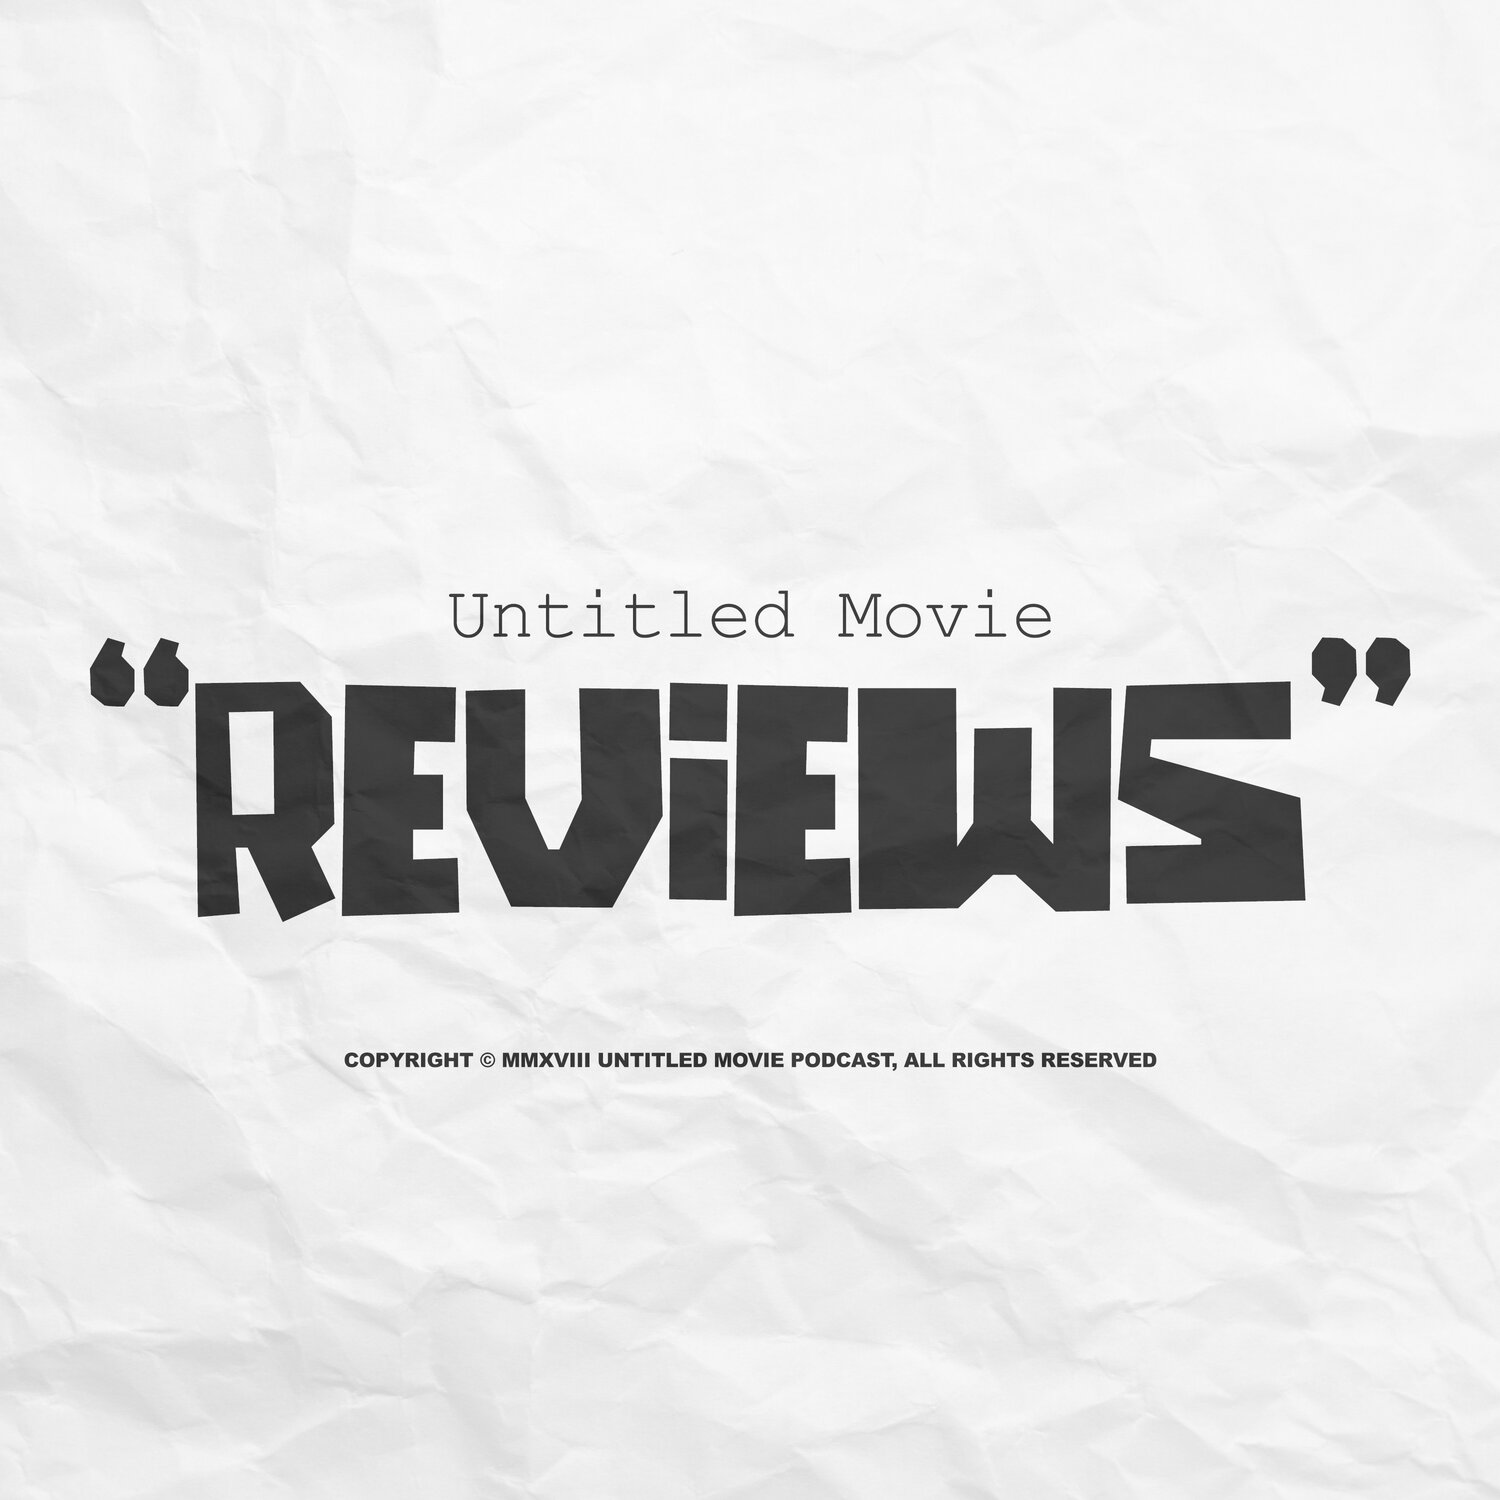 Untitled Movie Reviews podcast show image